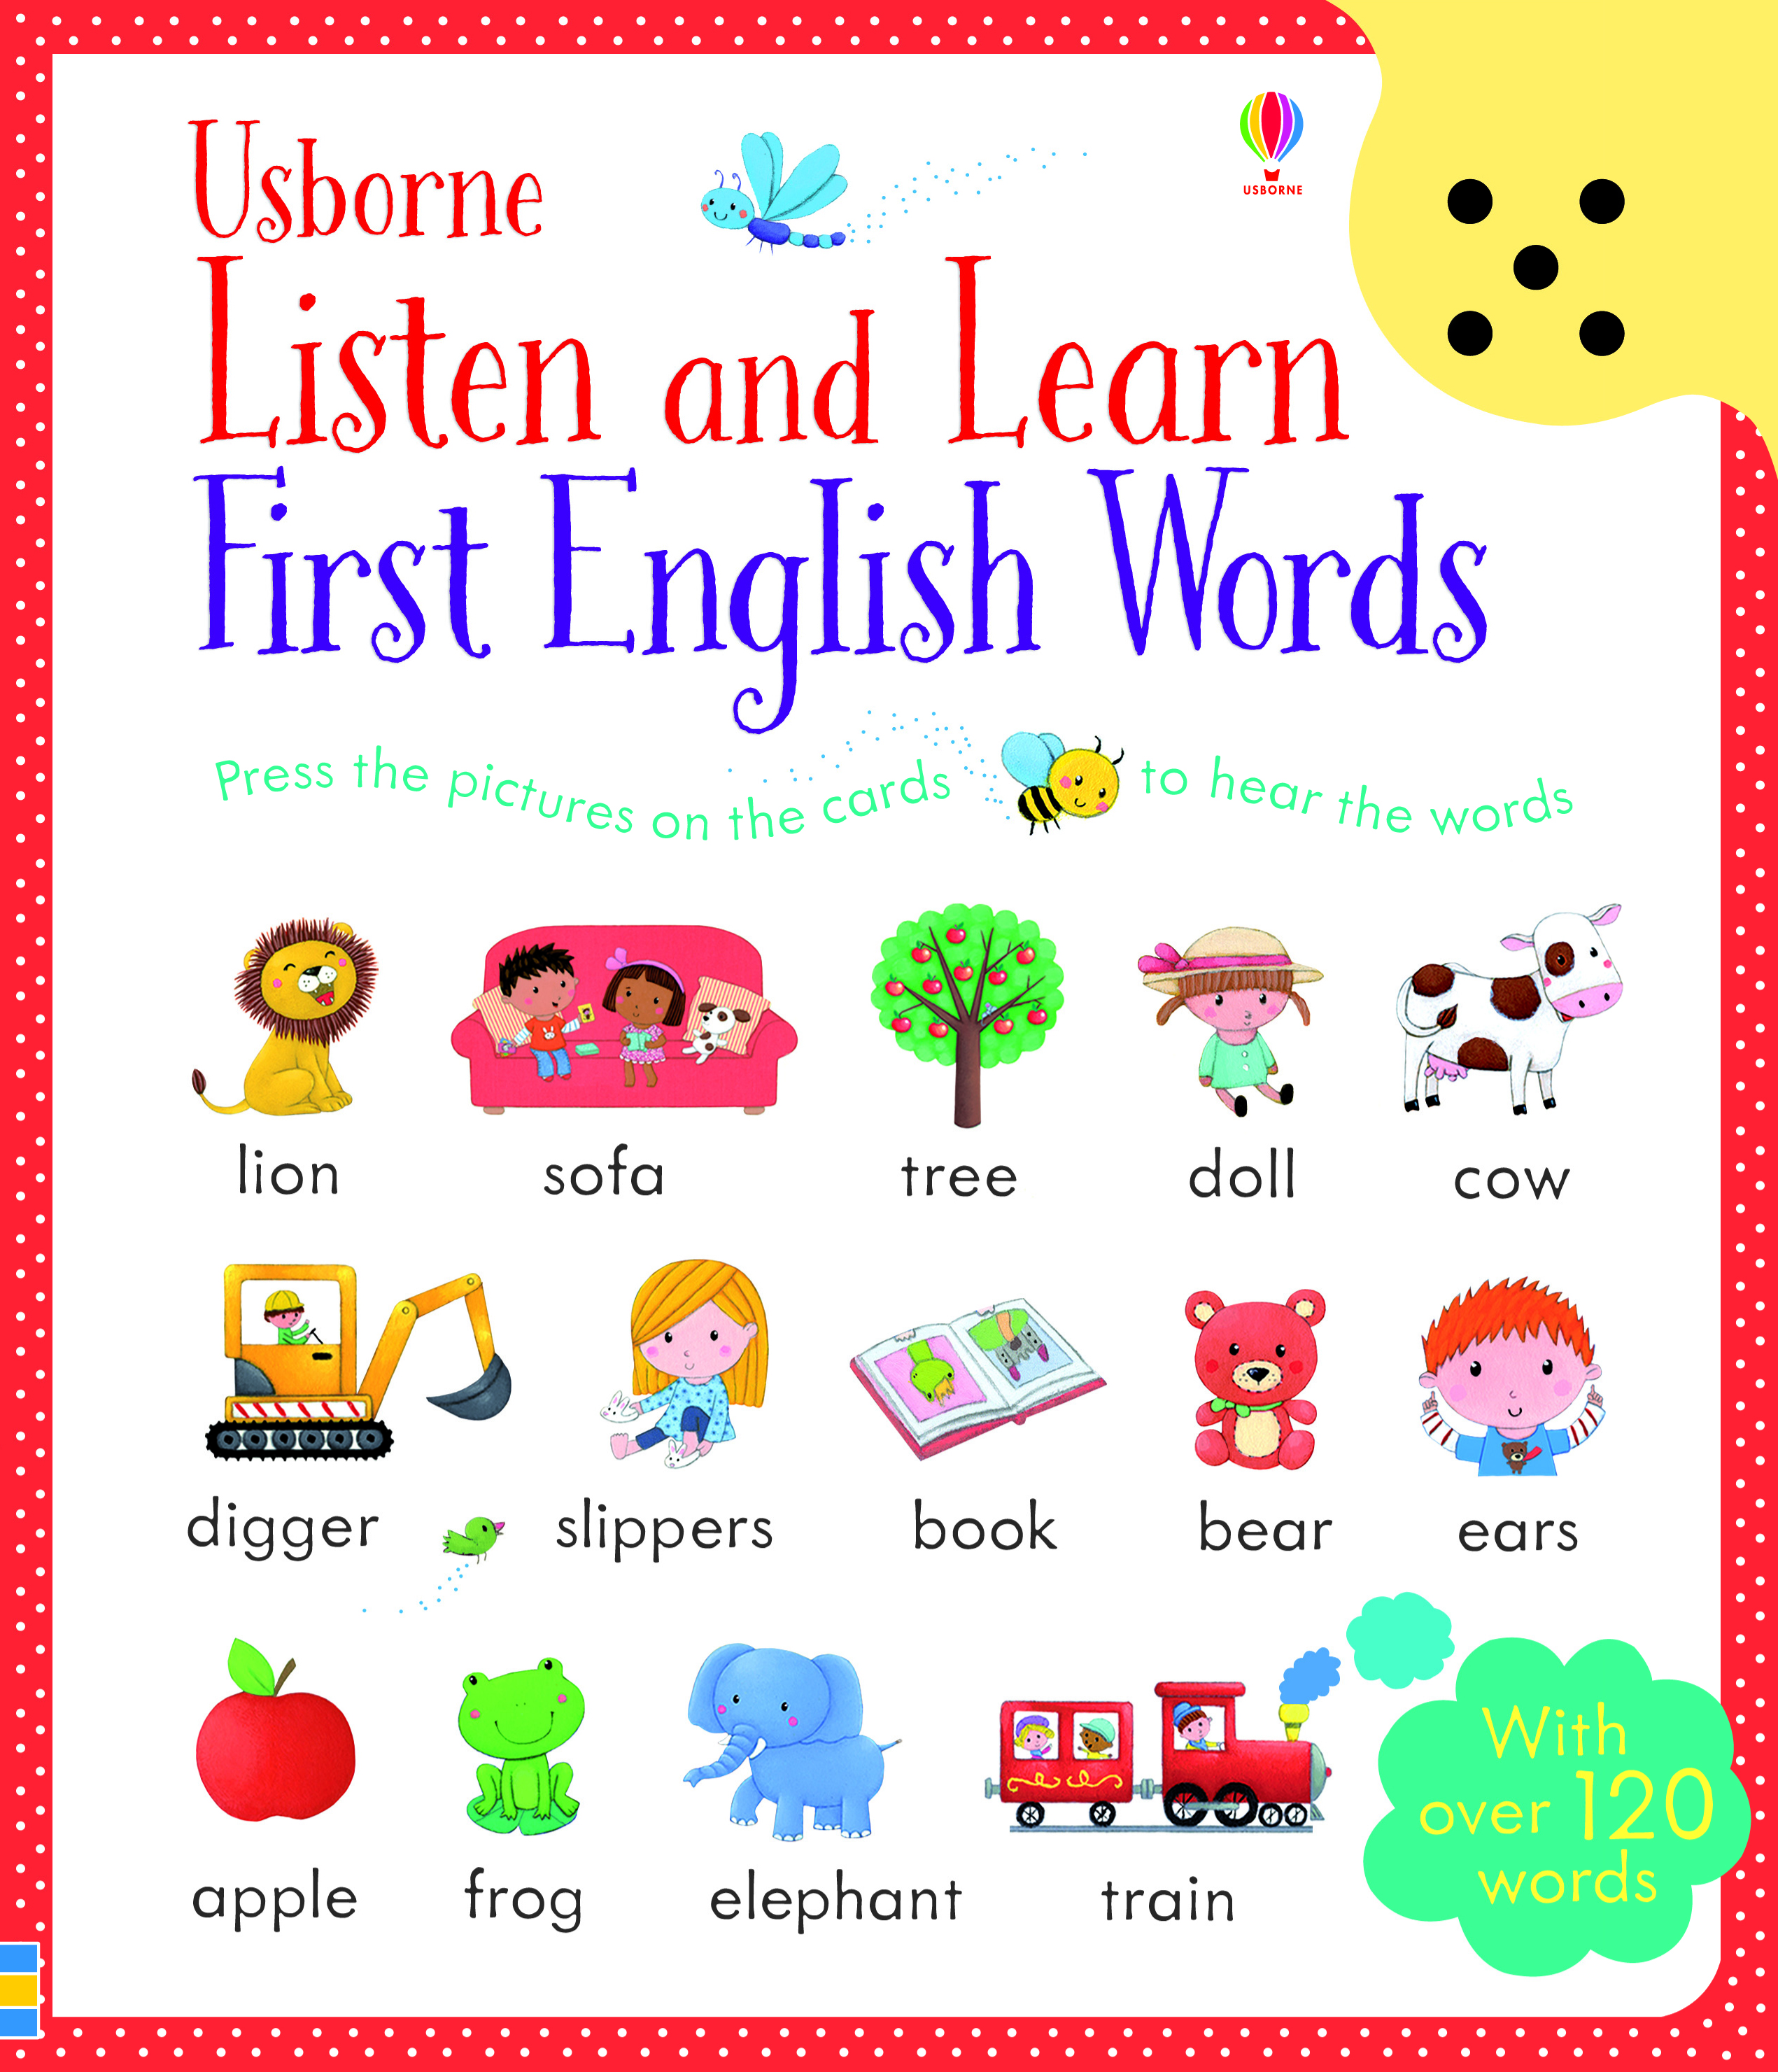 """Listen and learn first English words"""" at Usborne Children's Books"""